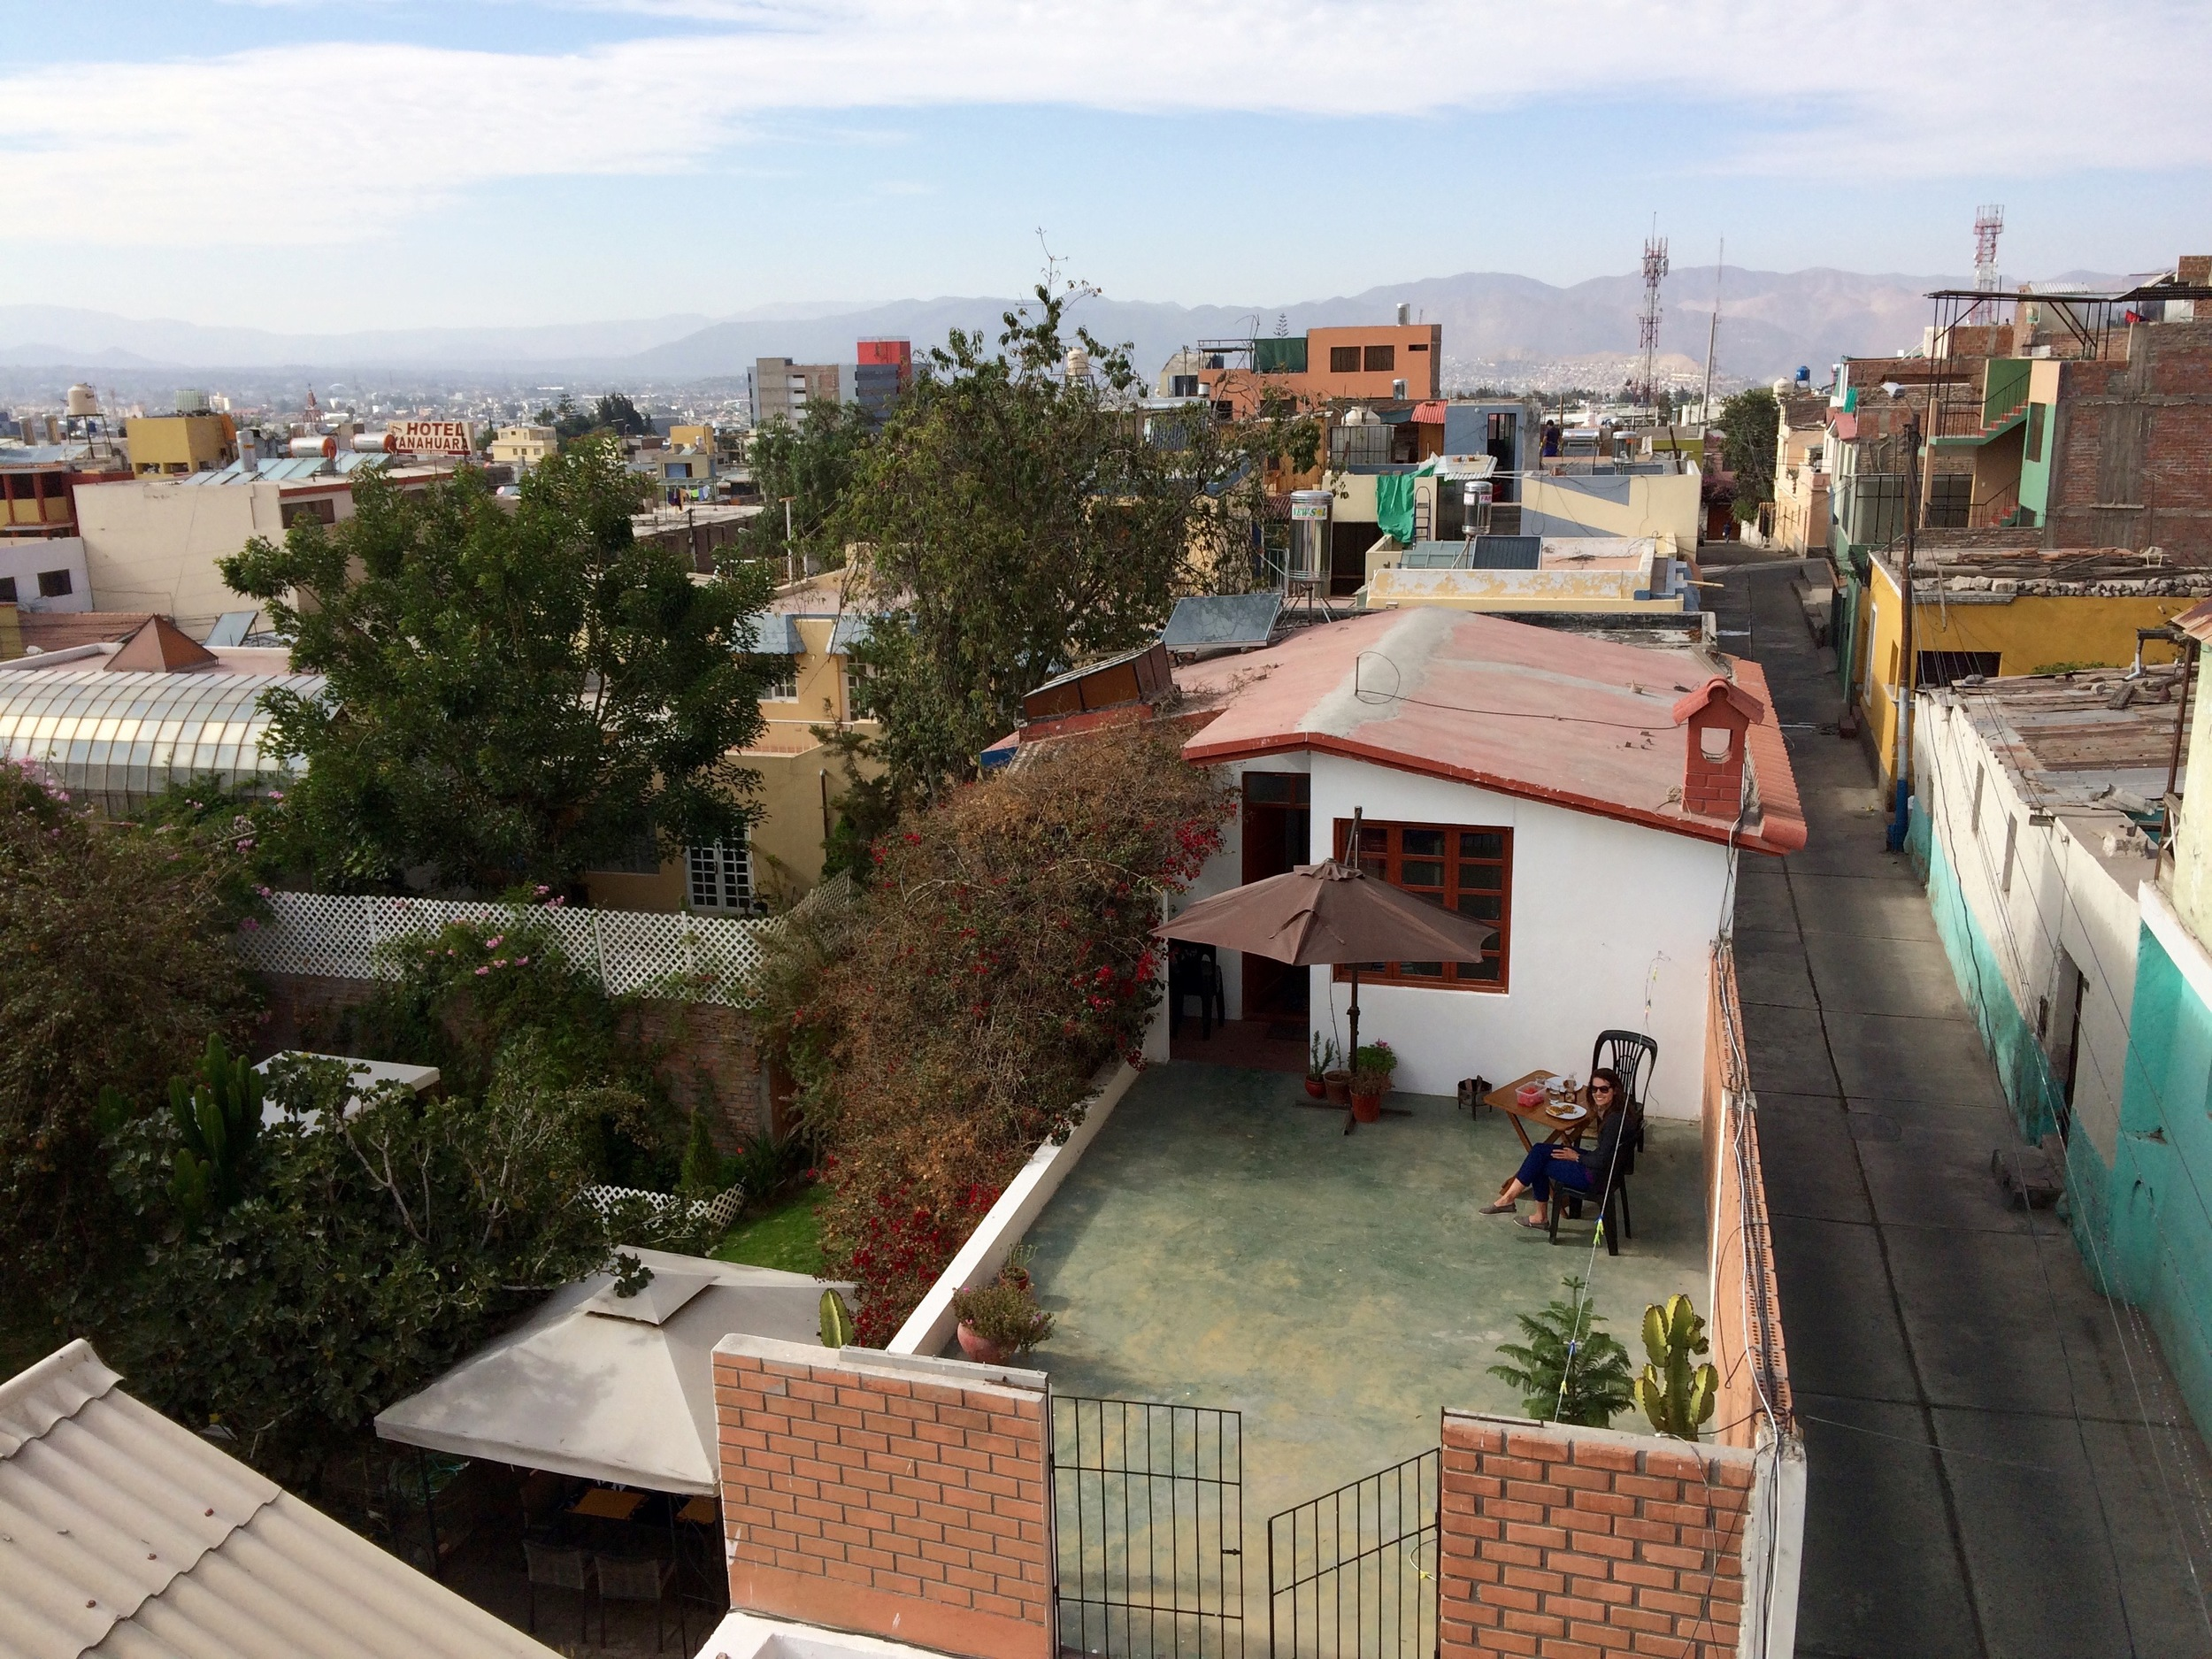 Looking down on our house. Garden to the left, Calle Zela to the right.